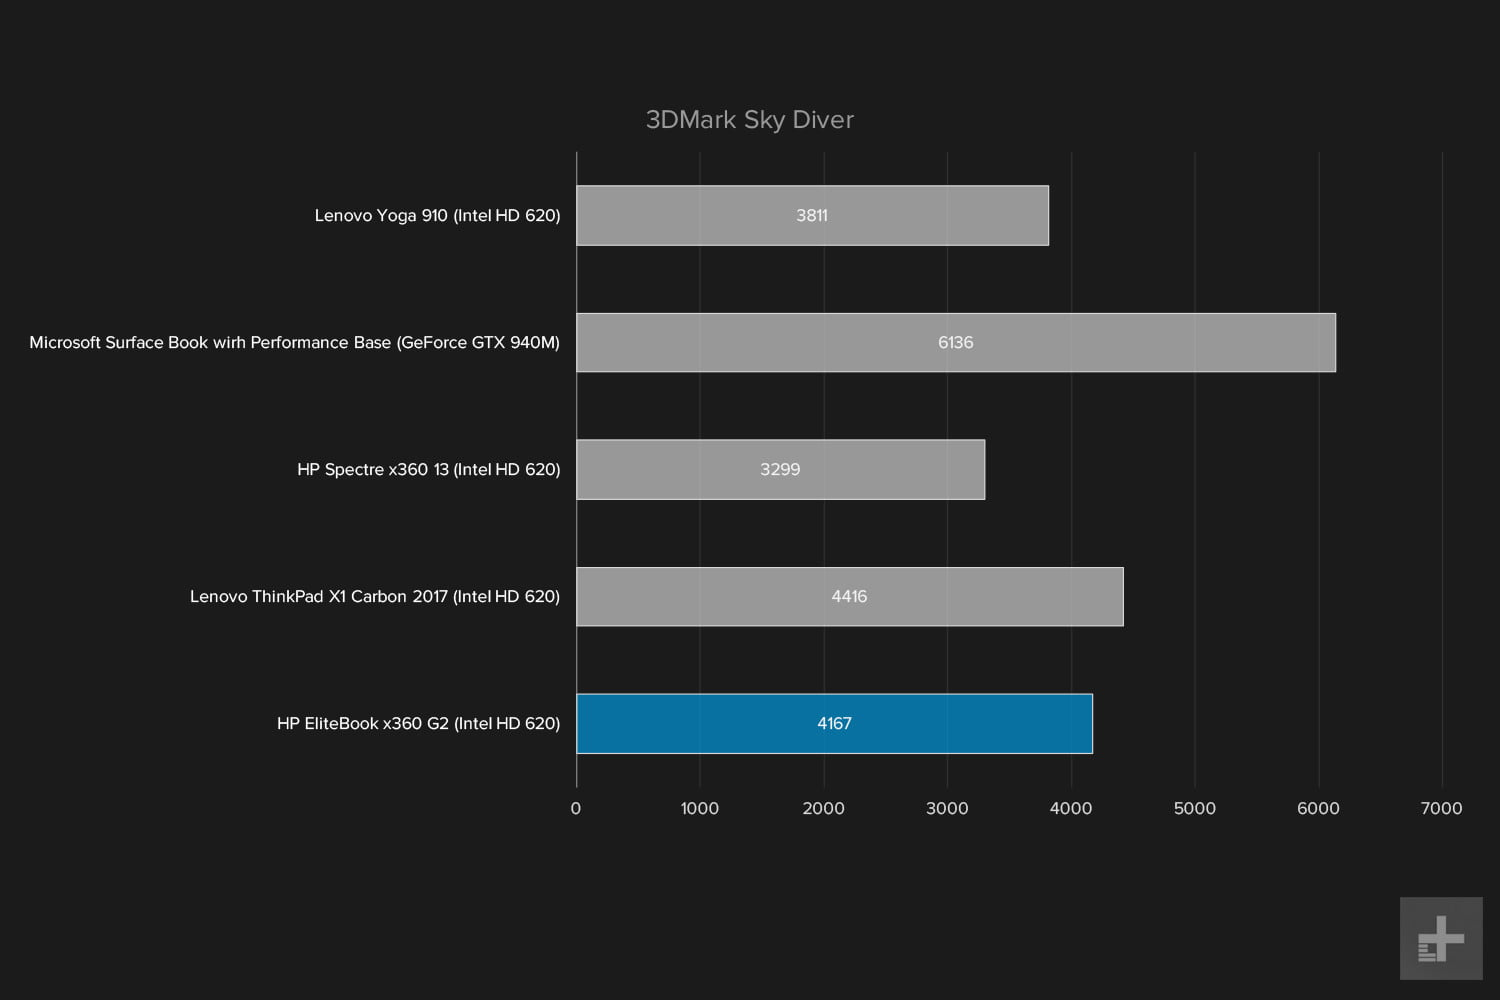 hp elitebook x360 g2 review 3dmarkskydiver graph